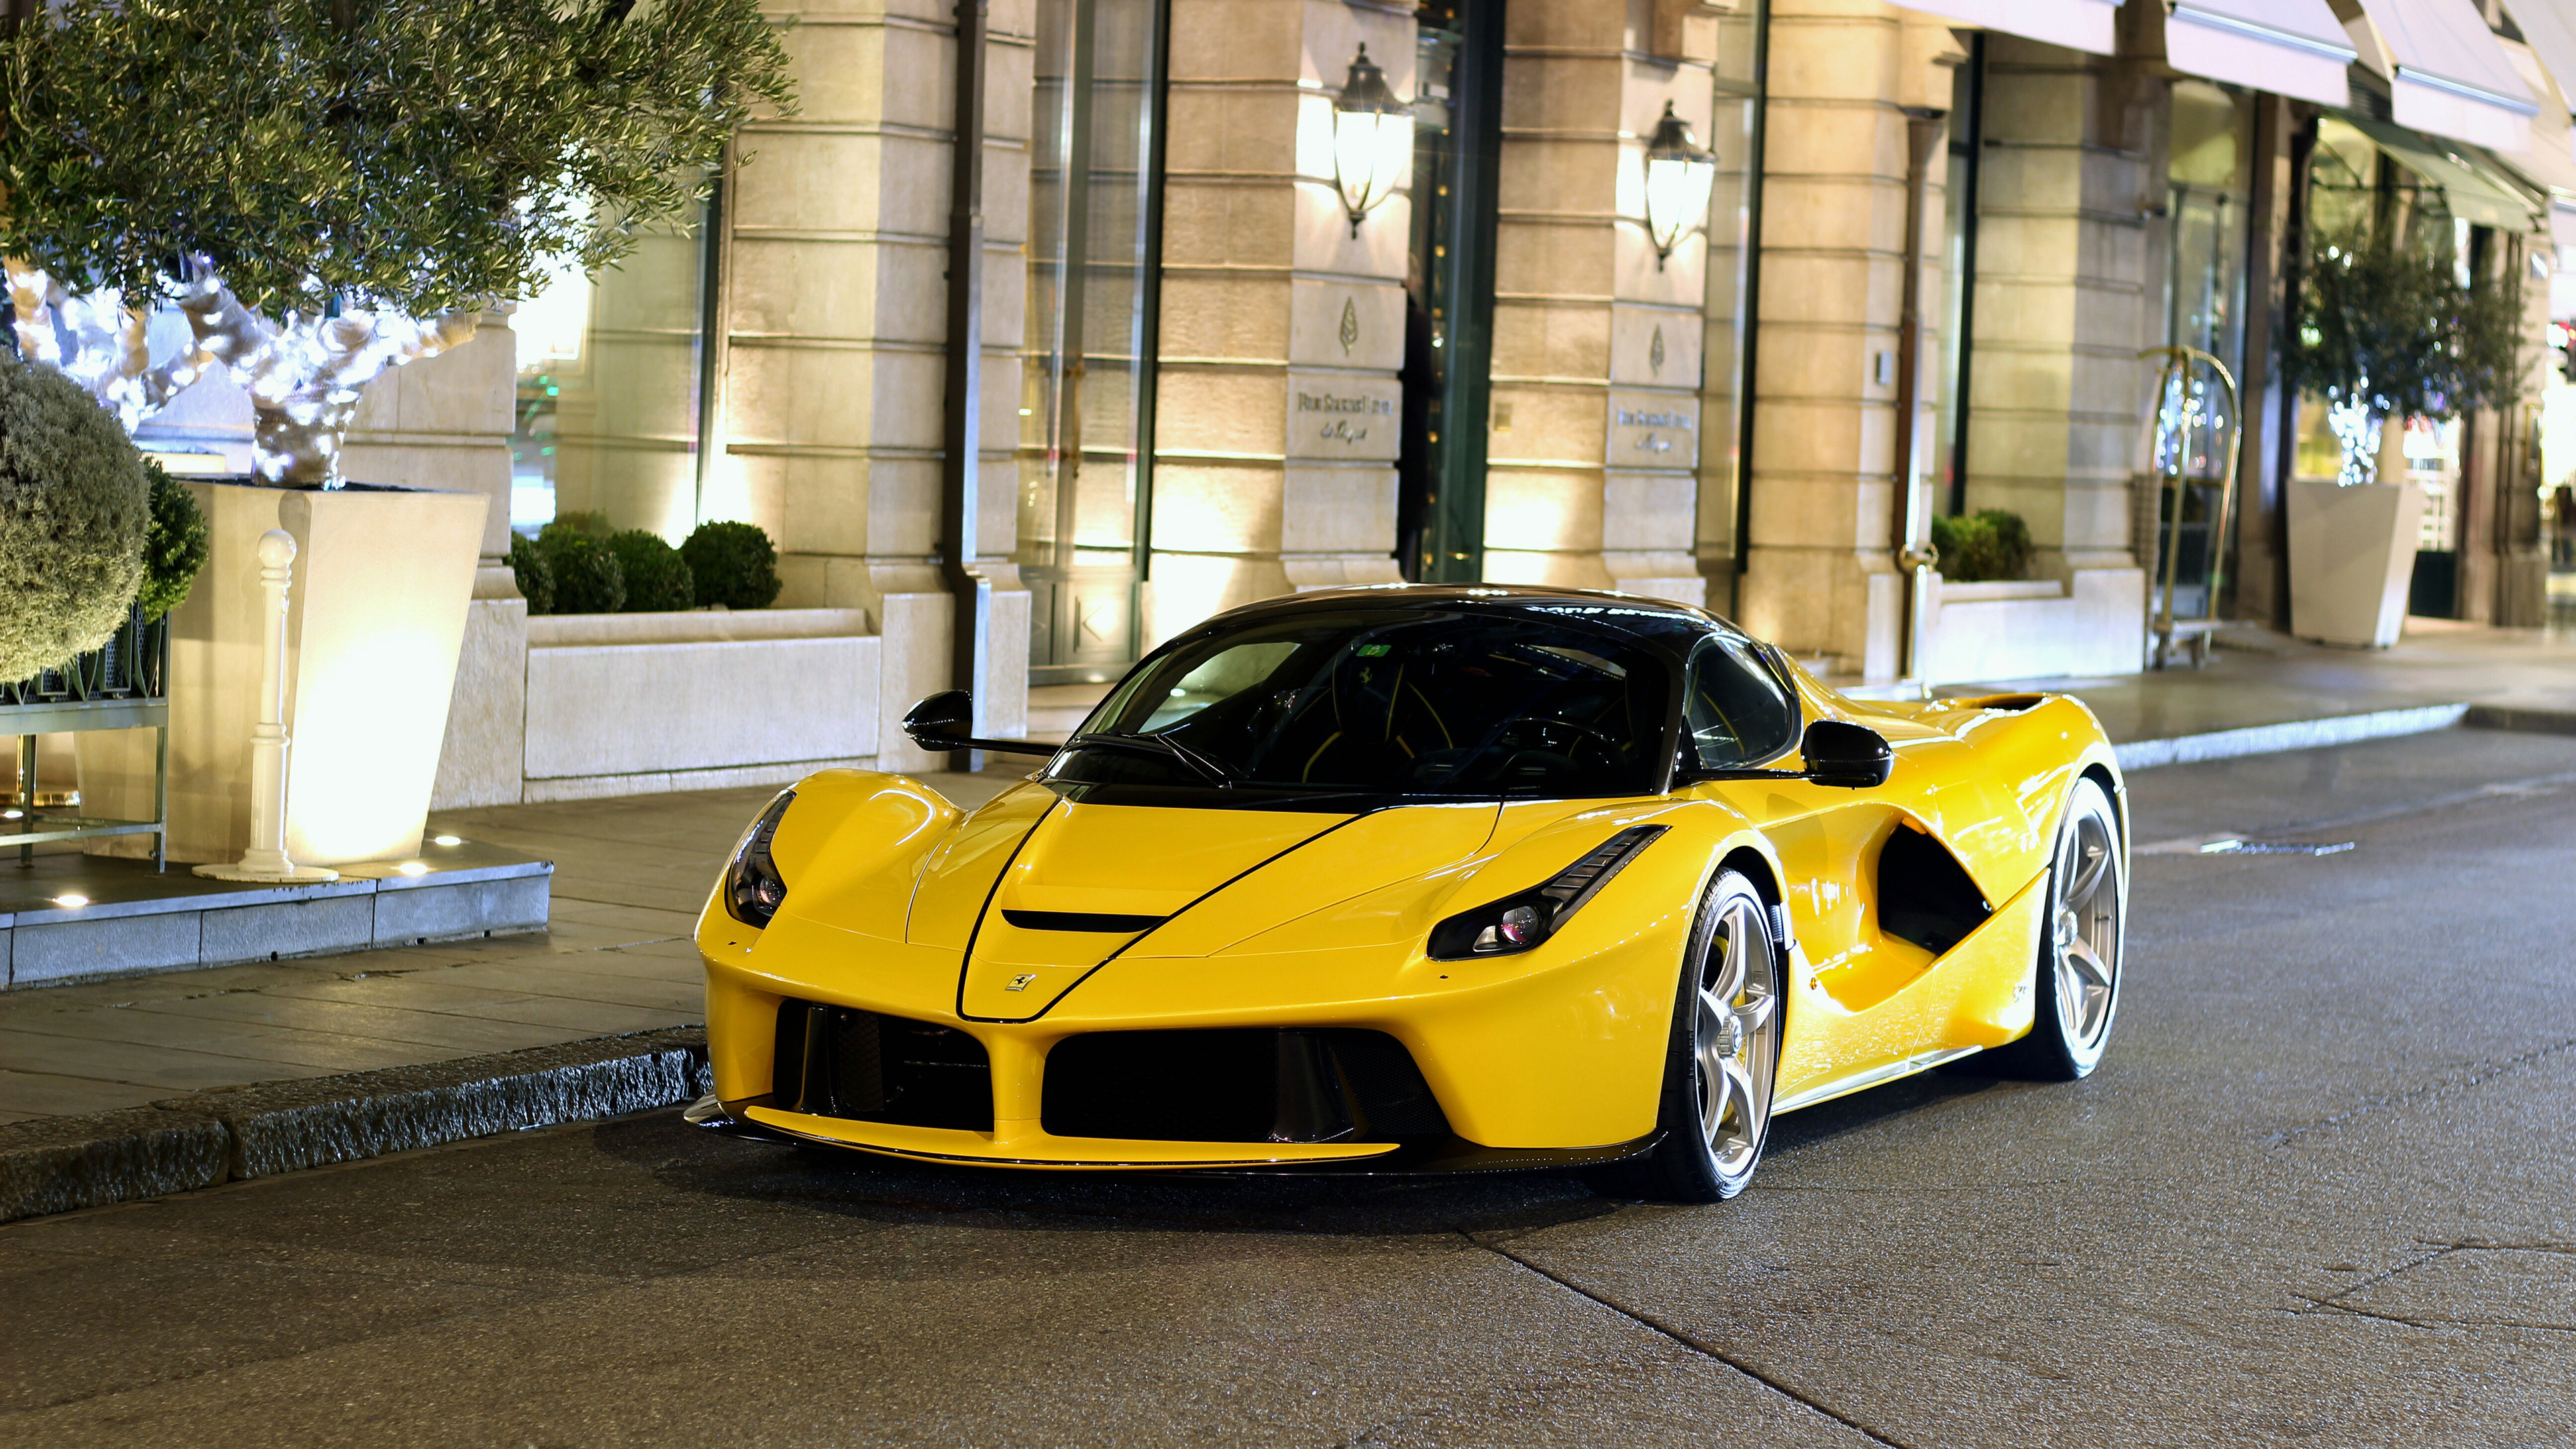 laferrari aperta 1539108692 - Laferrari Aperta - laferrari wallpapers, hd-wallpapers, ferrari wallpapers, cars wallpapers, 4k-wallpapers, 2017 cars wallpapers